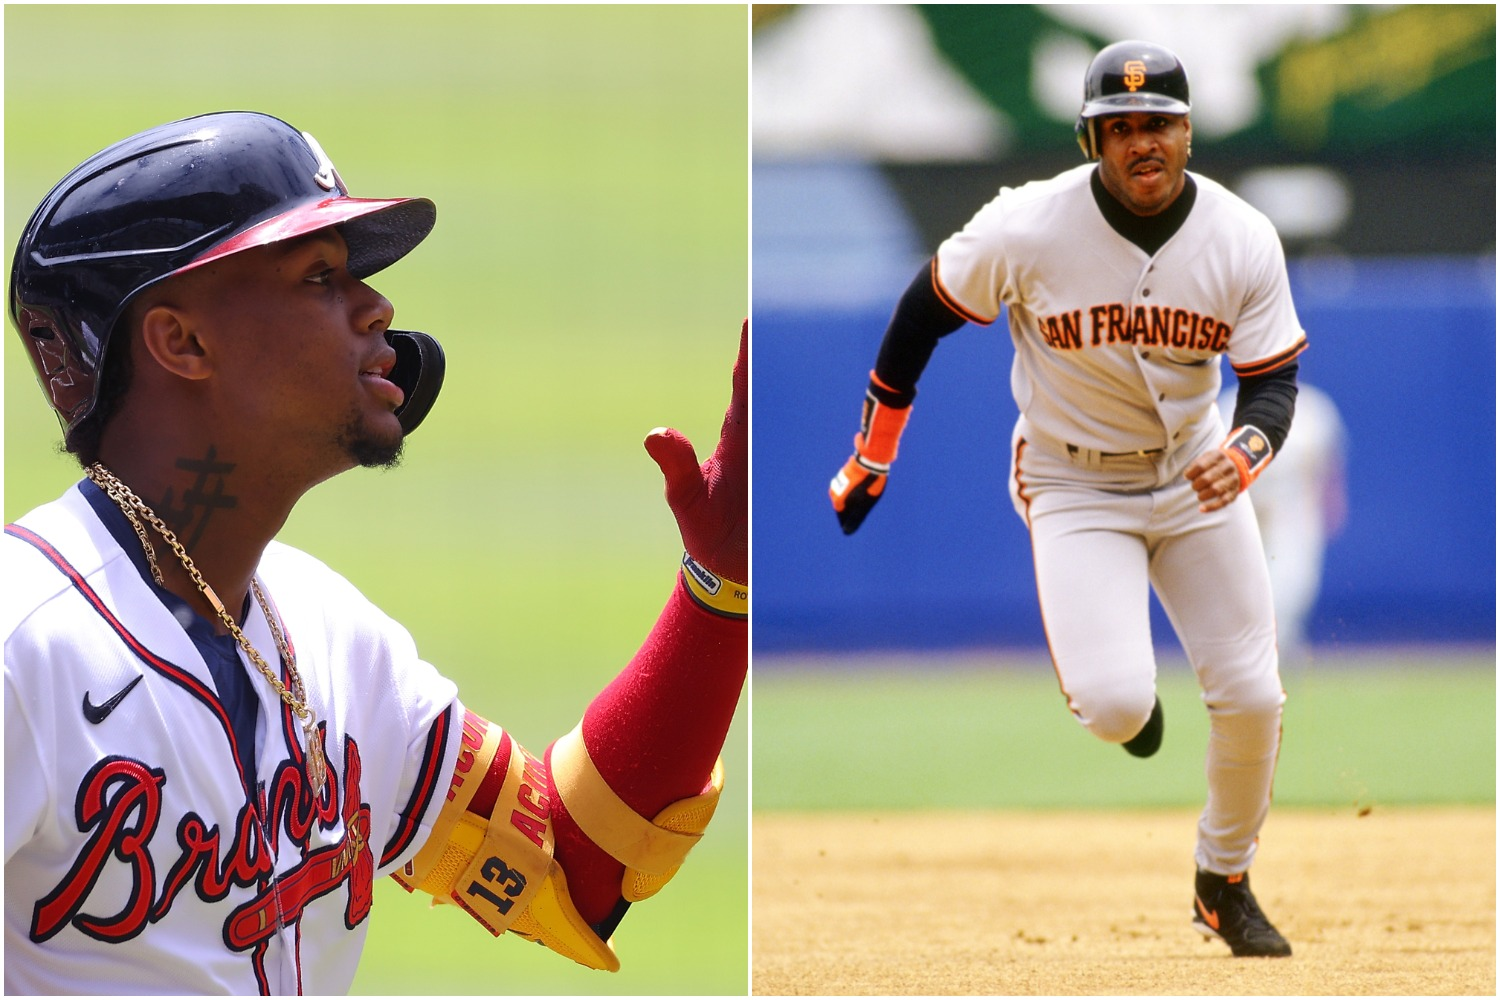 Ronald Acuna Jr. Just Forced Barry Bonds to Make Room For Him in MLB Record Books